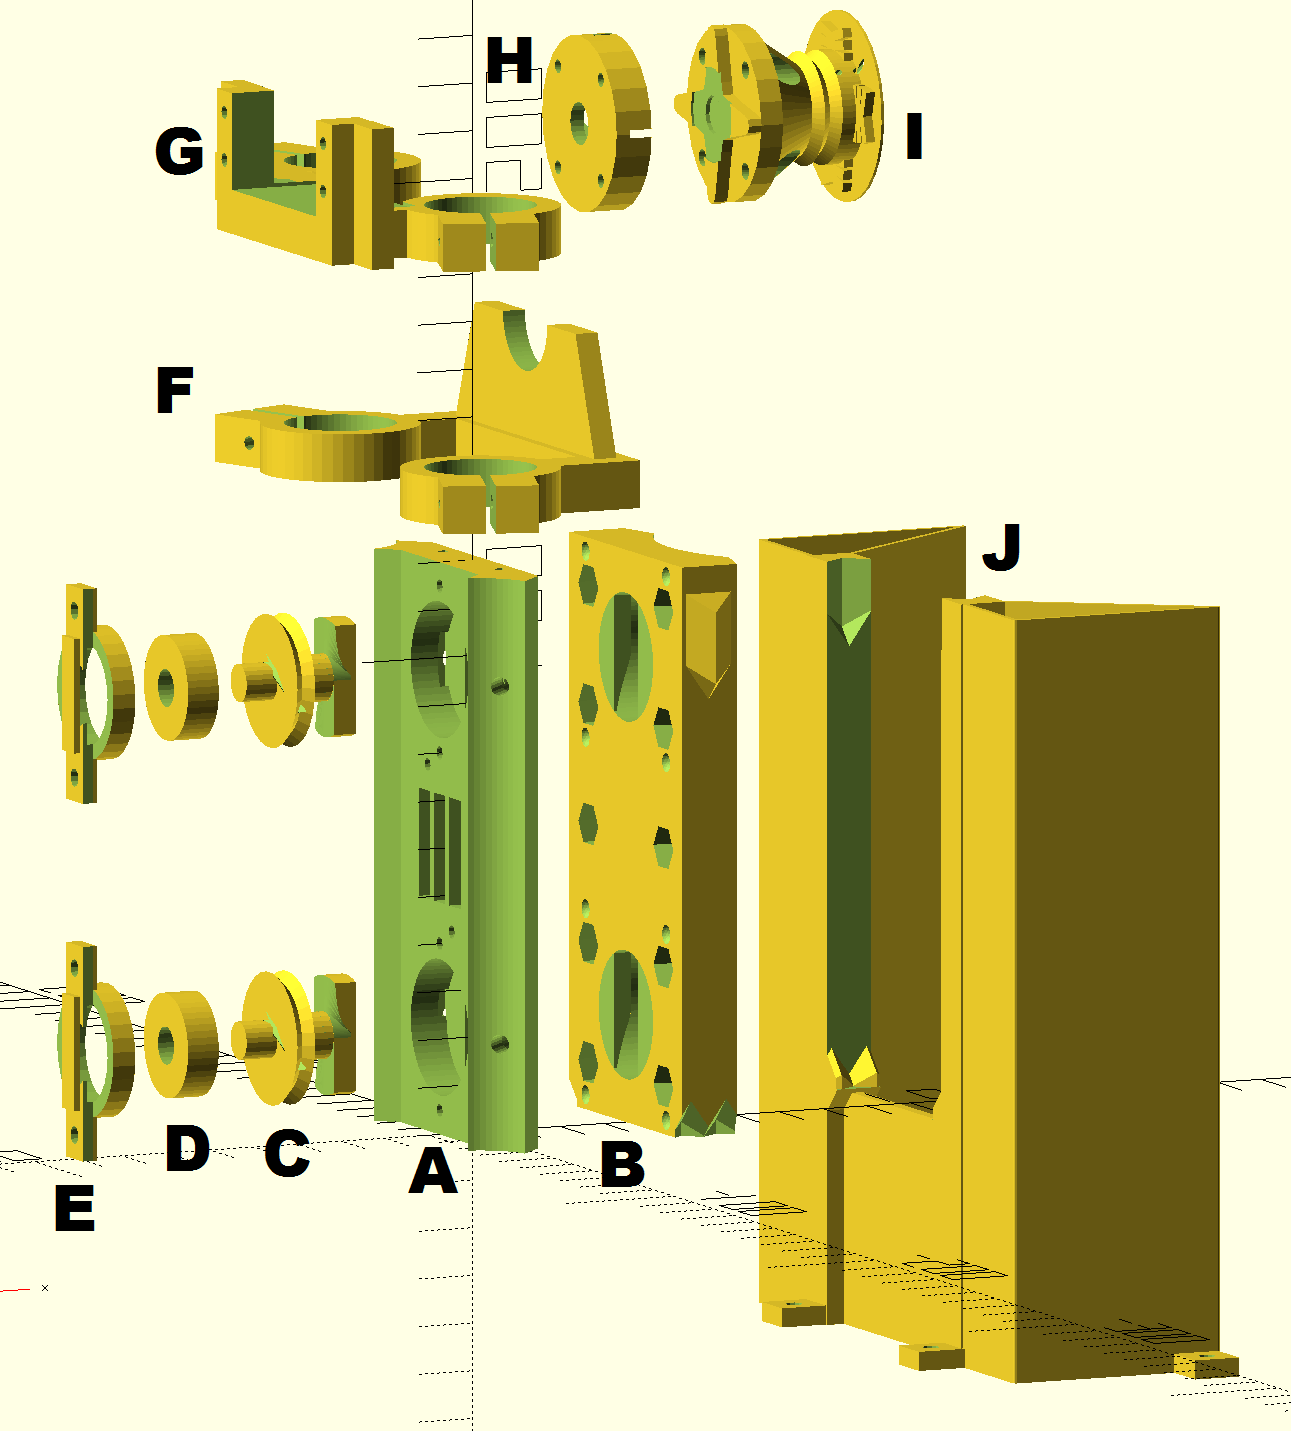 exploded_view_labeled